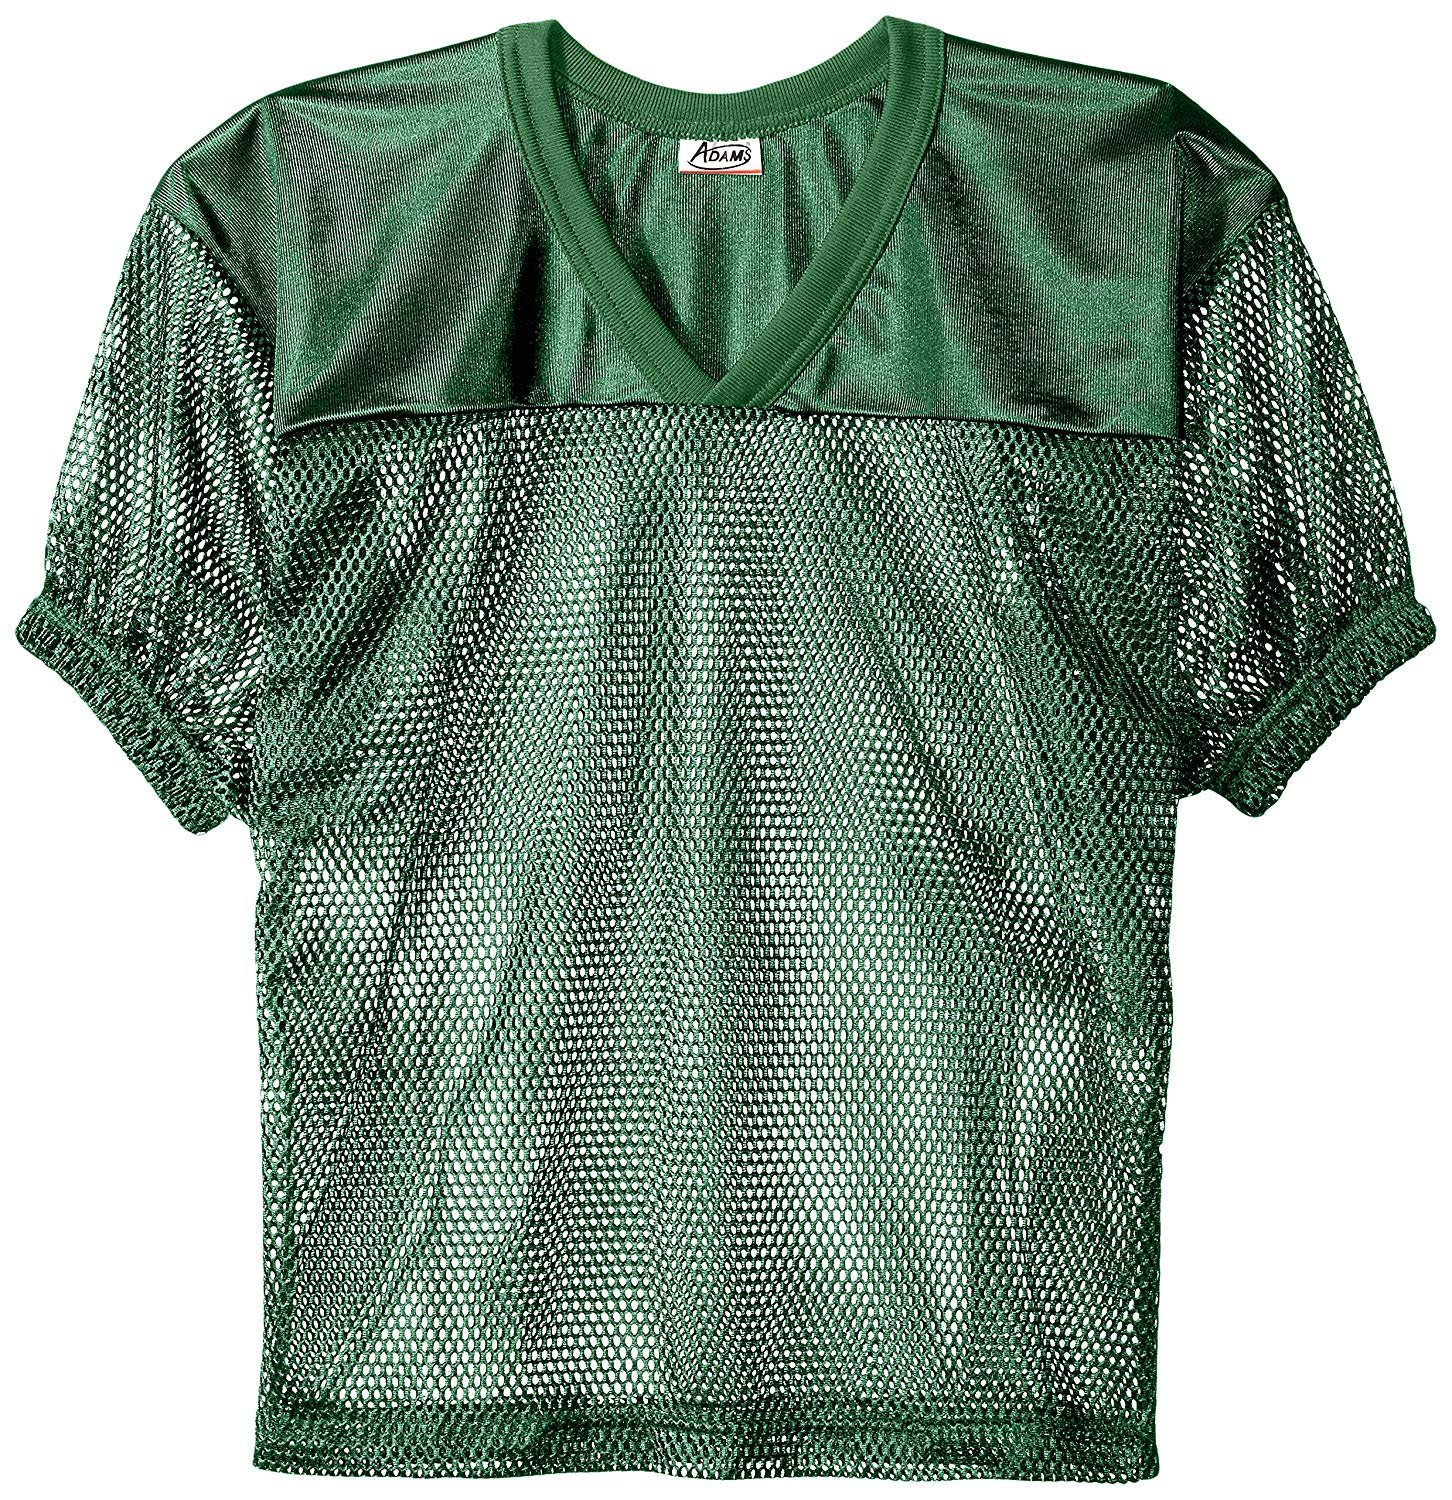 Adams USA FB Youth Jersey with Elastic Sleeve, Dark Green, S